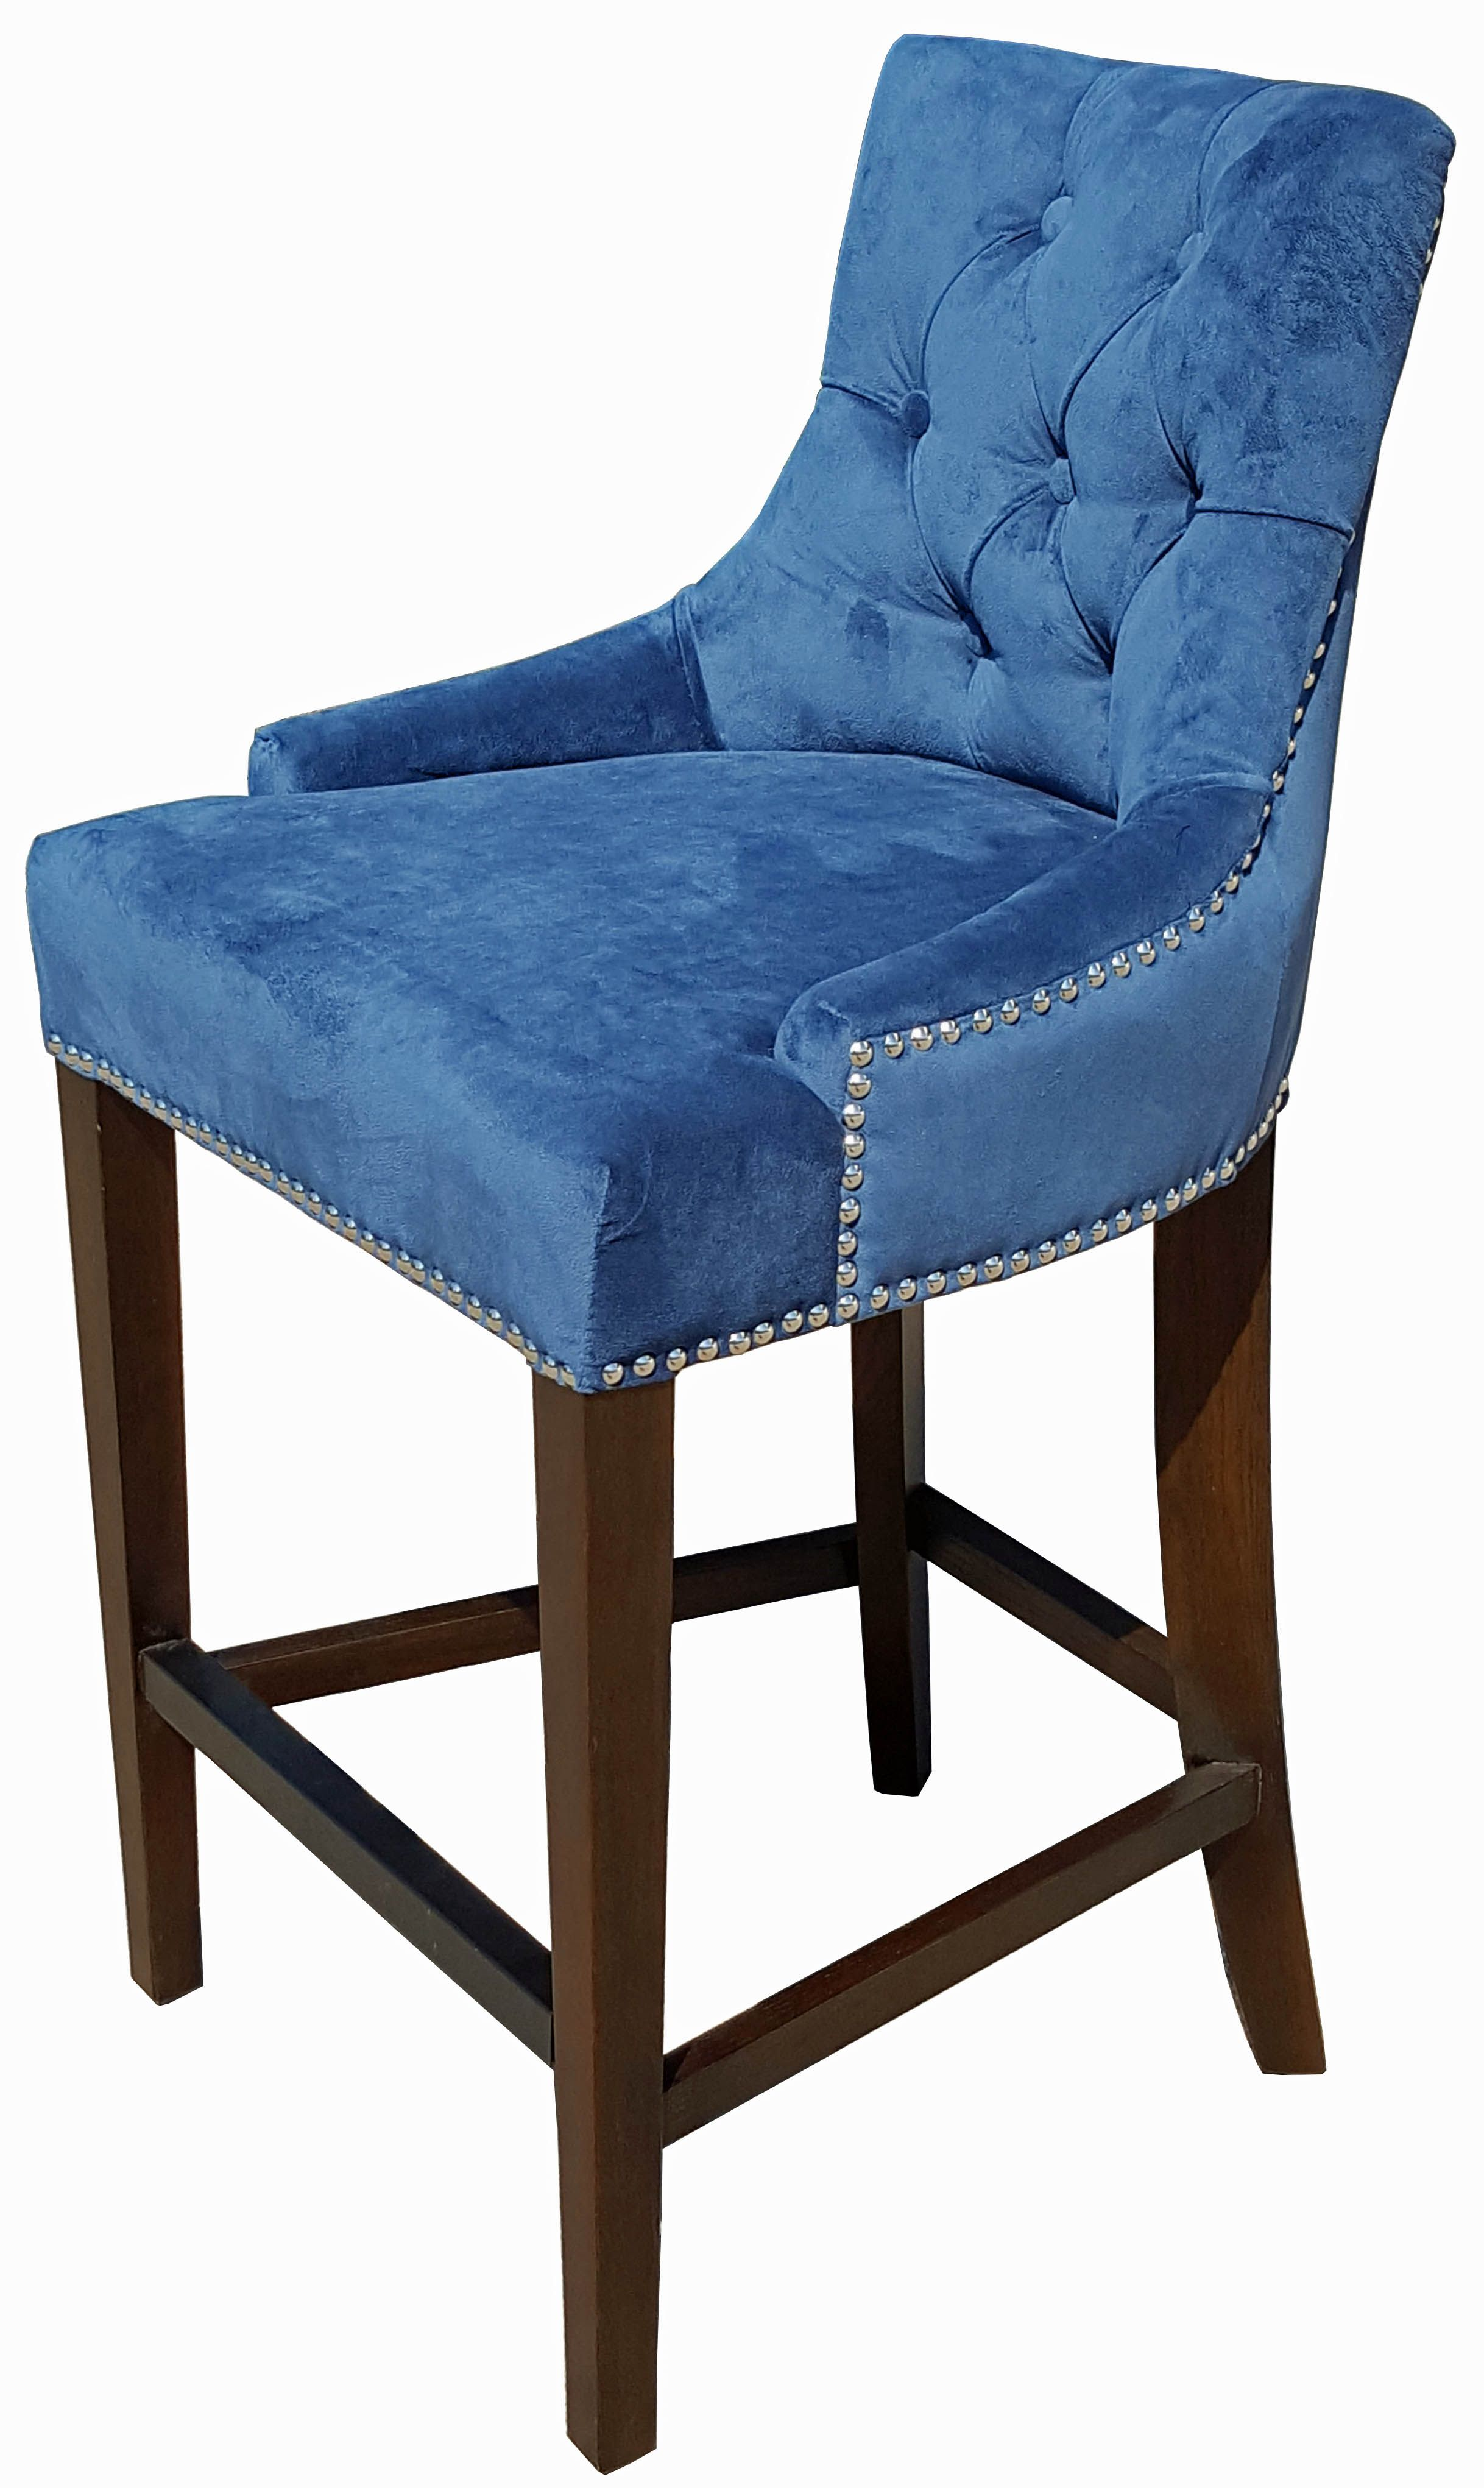 3773e98a21ed Bar Stools   Kitchen Counter Stools    Blue Velvet Fabric Tufted Counter  Stool w Silver Nail Head Trim R-1081 - ARTeFAC USA